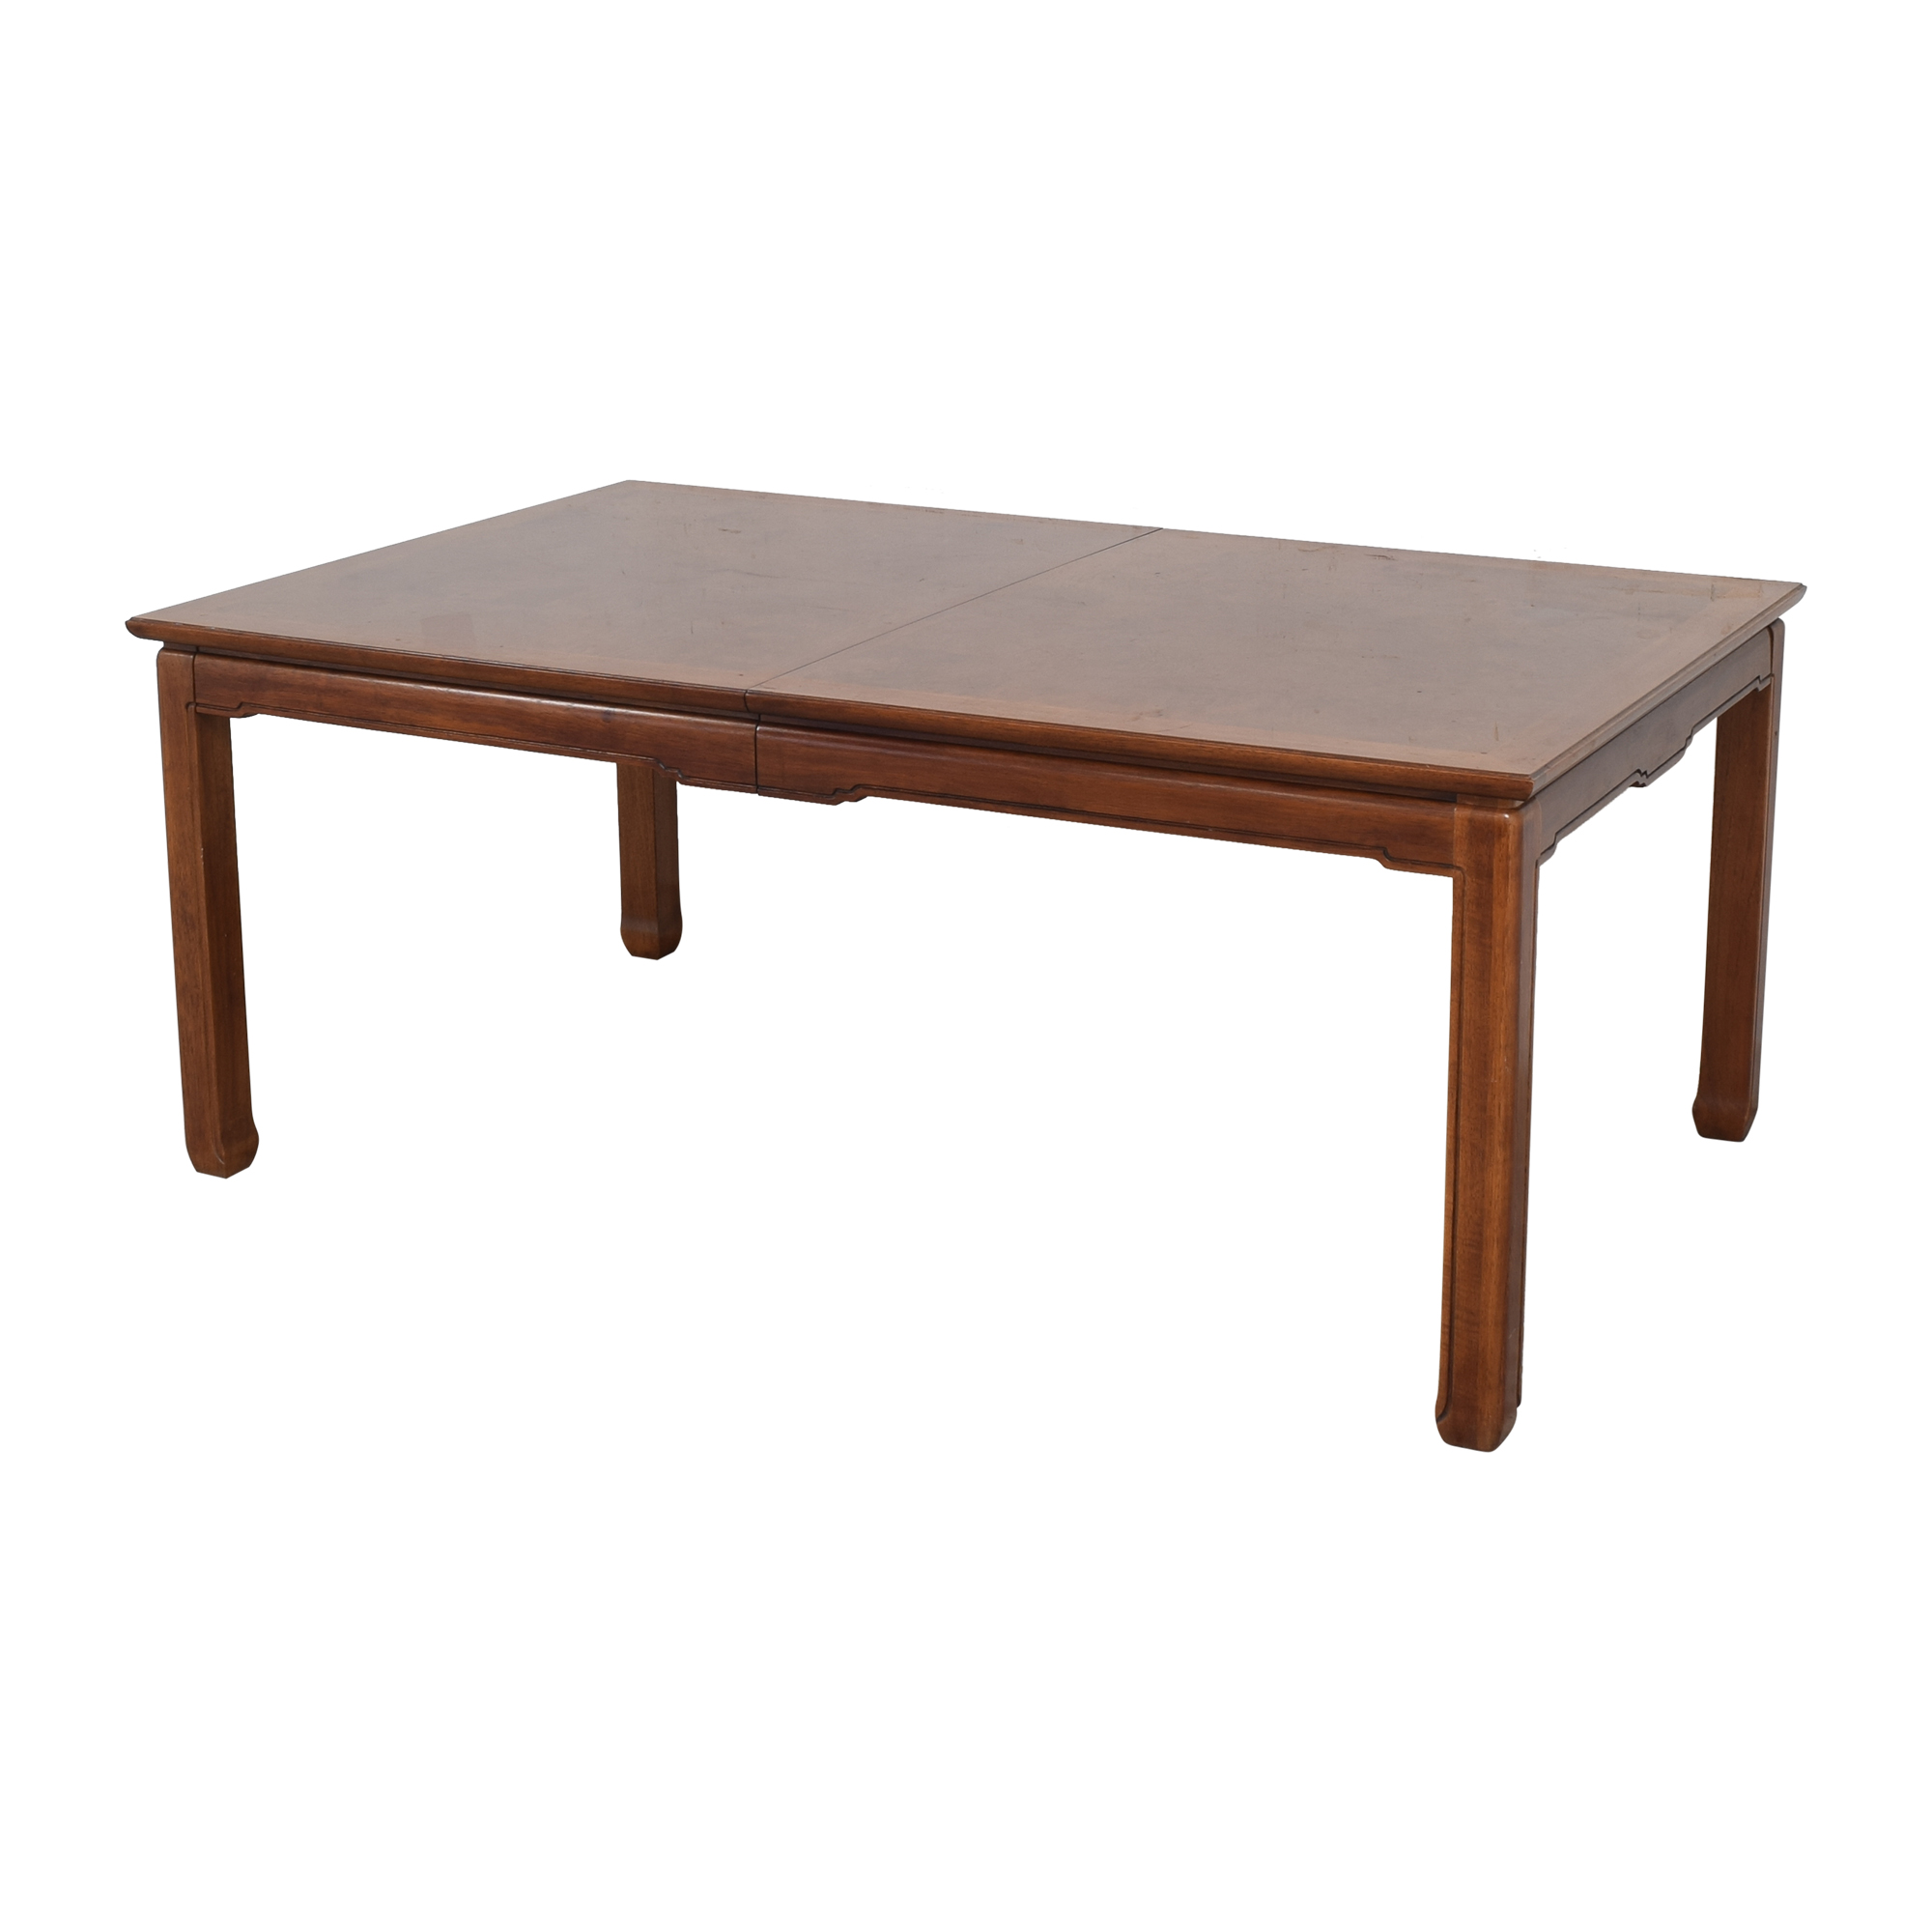 Thomasville Thomasville Mystique Extendable Dining Table coupon